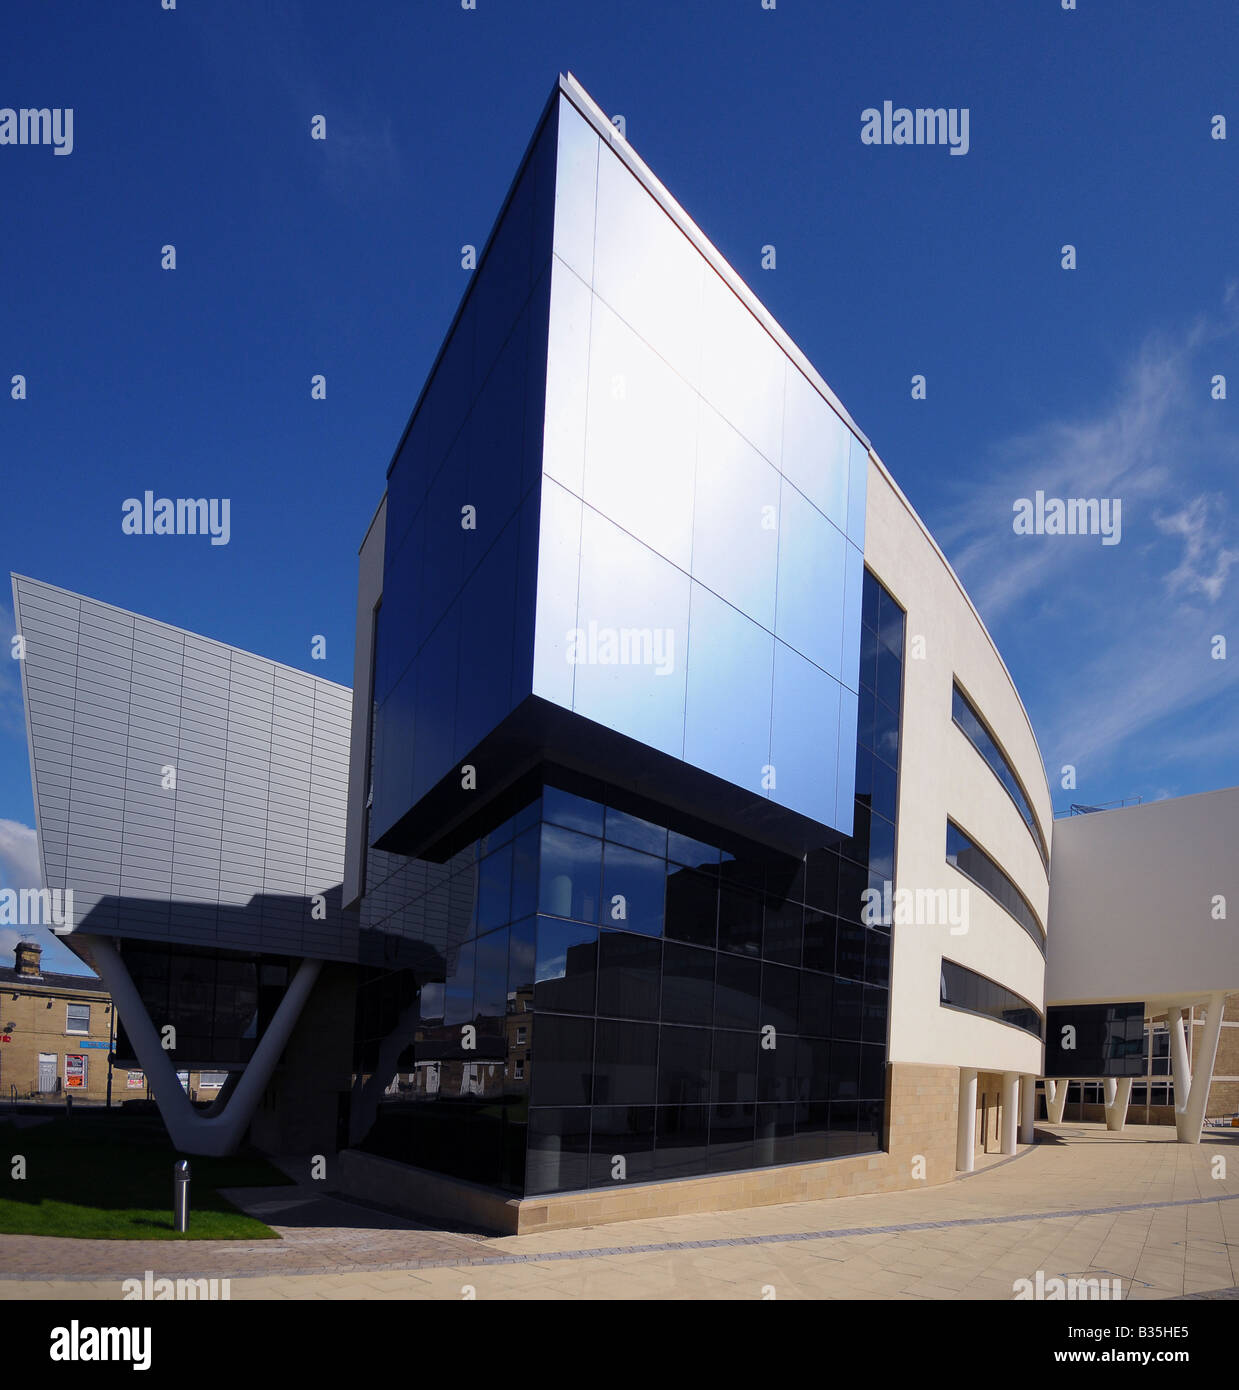 University of Huddersfield Creative Arts Building - Stock Image